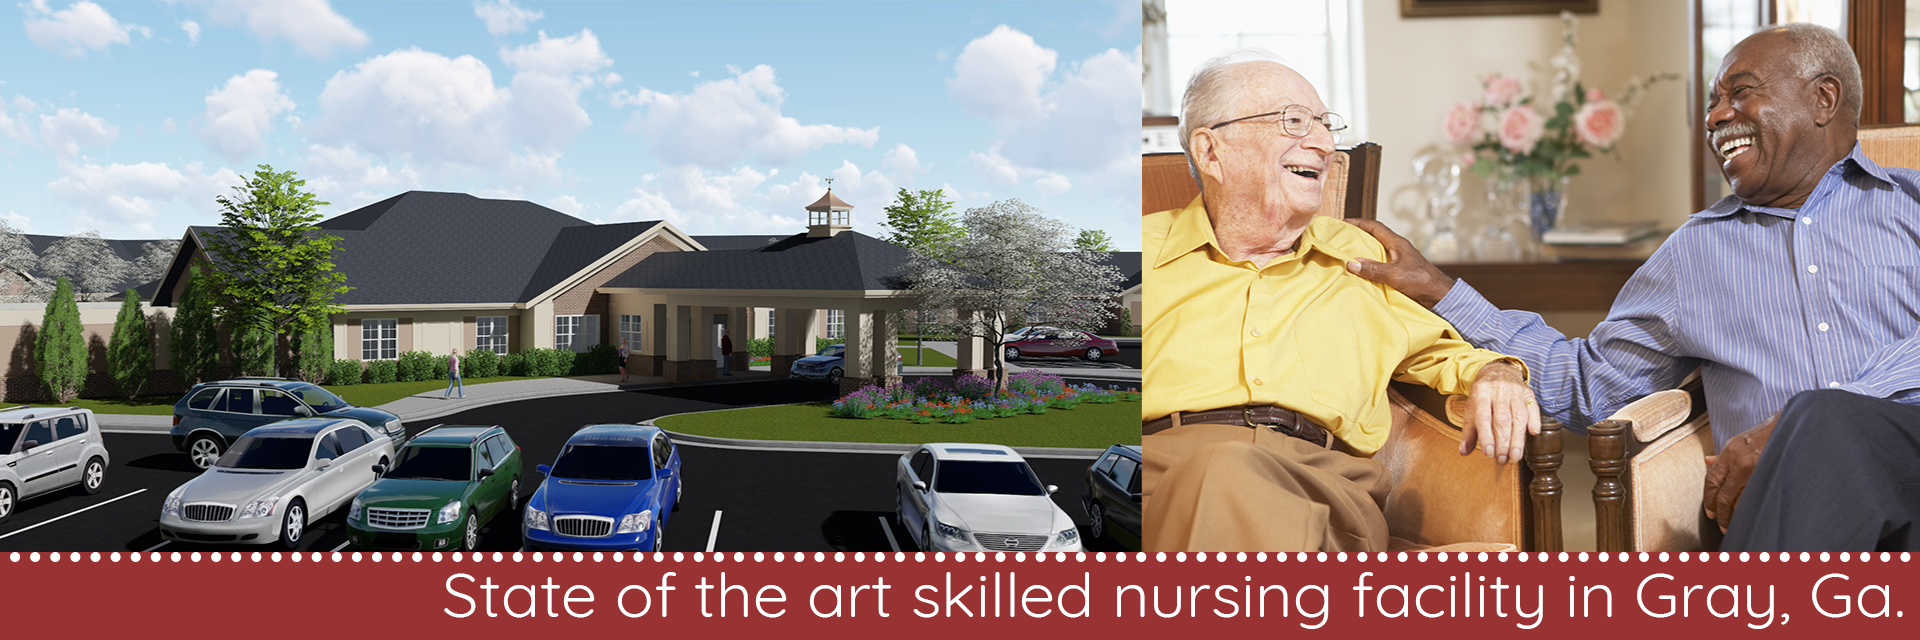 Architectural drawing of the front-left side of the skilled nursing facility